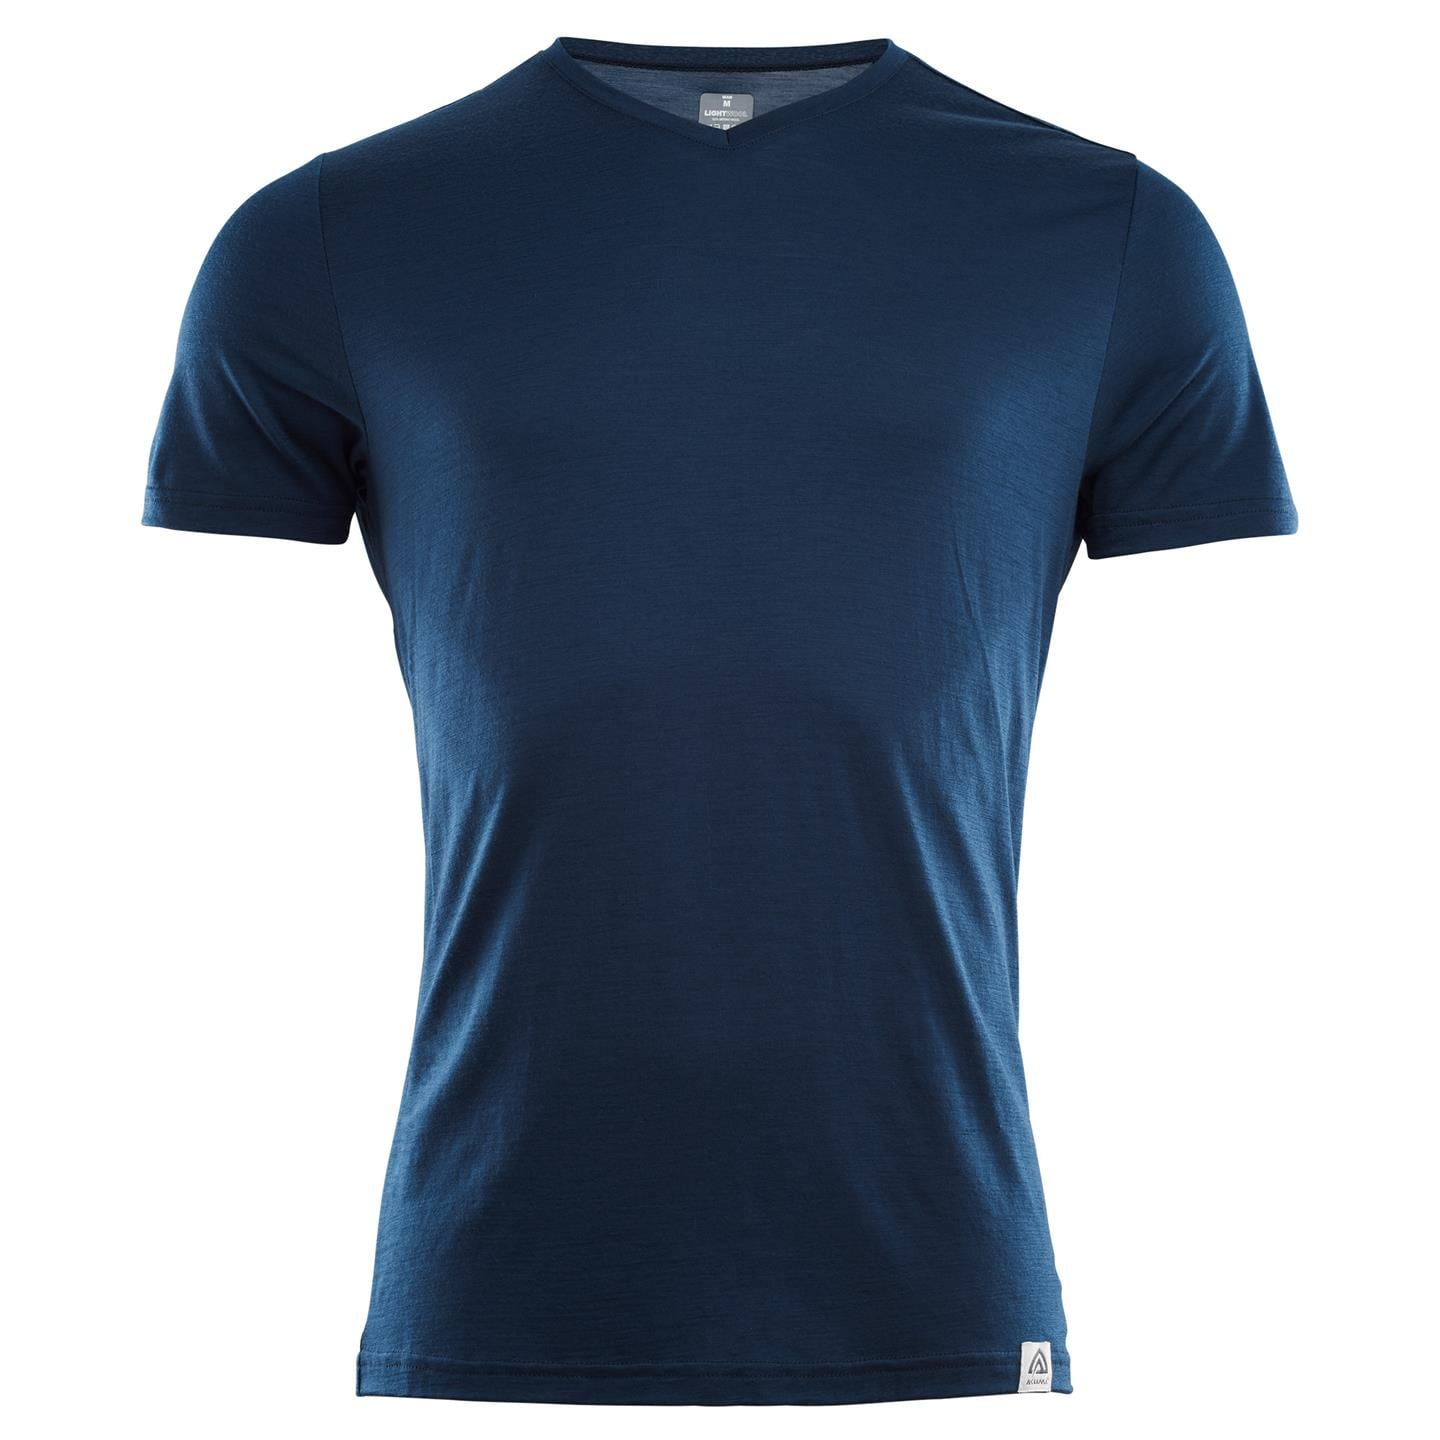 Aclima LightWool T-shirt, M's